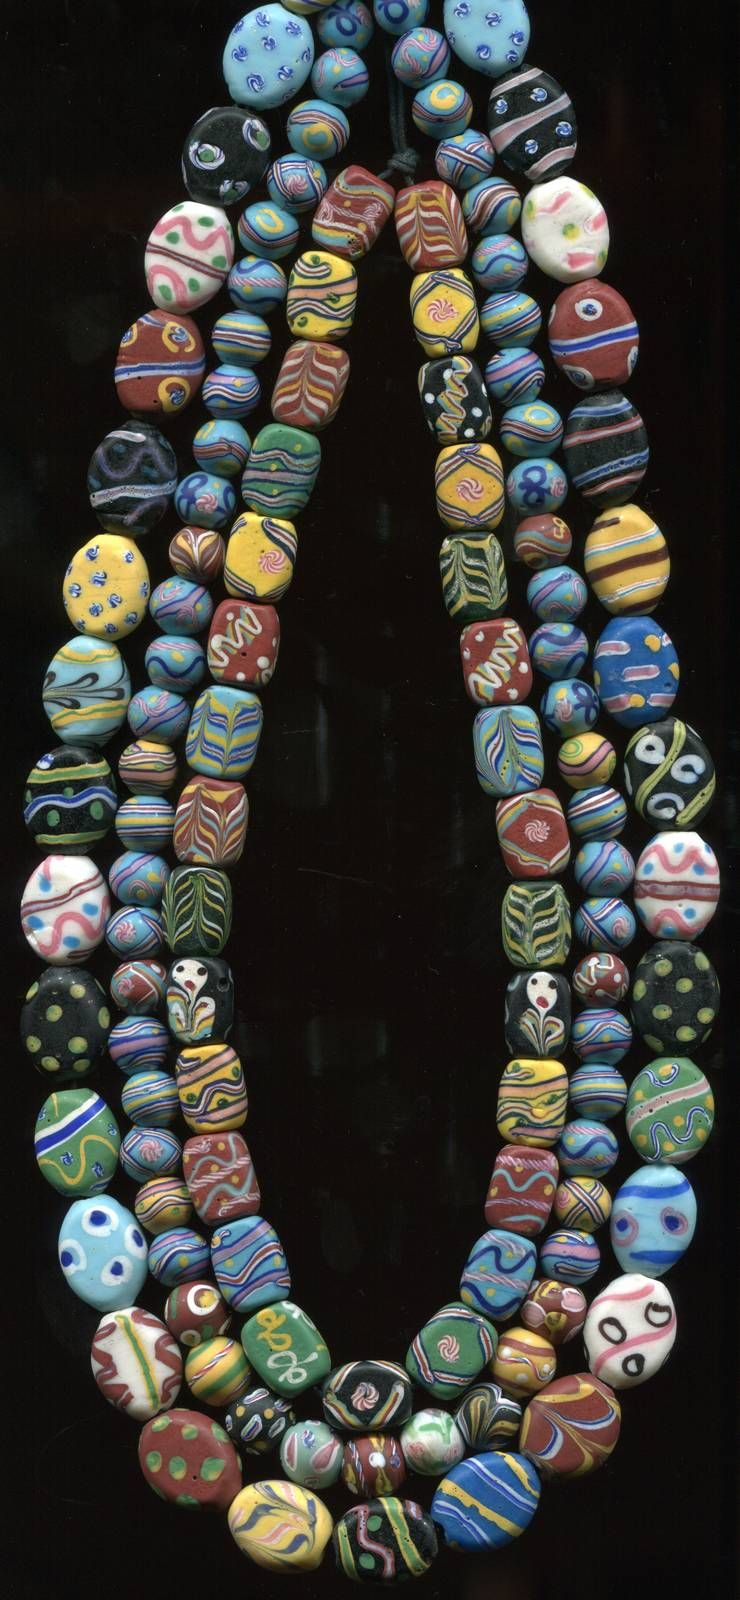 240 Antique Trade Beads Ideas Trade Beads Beads African Trade Beads